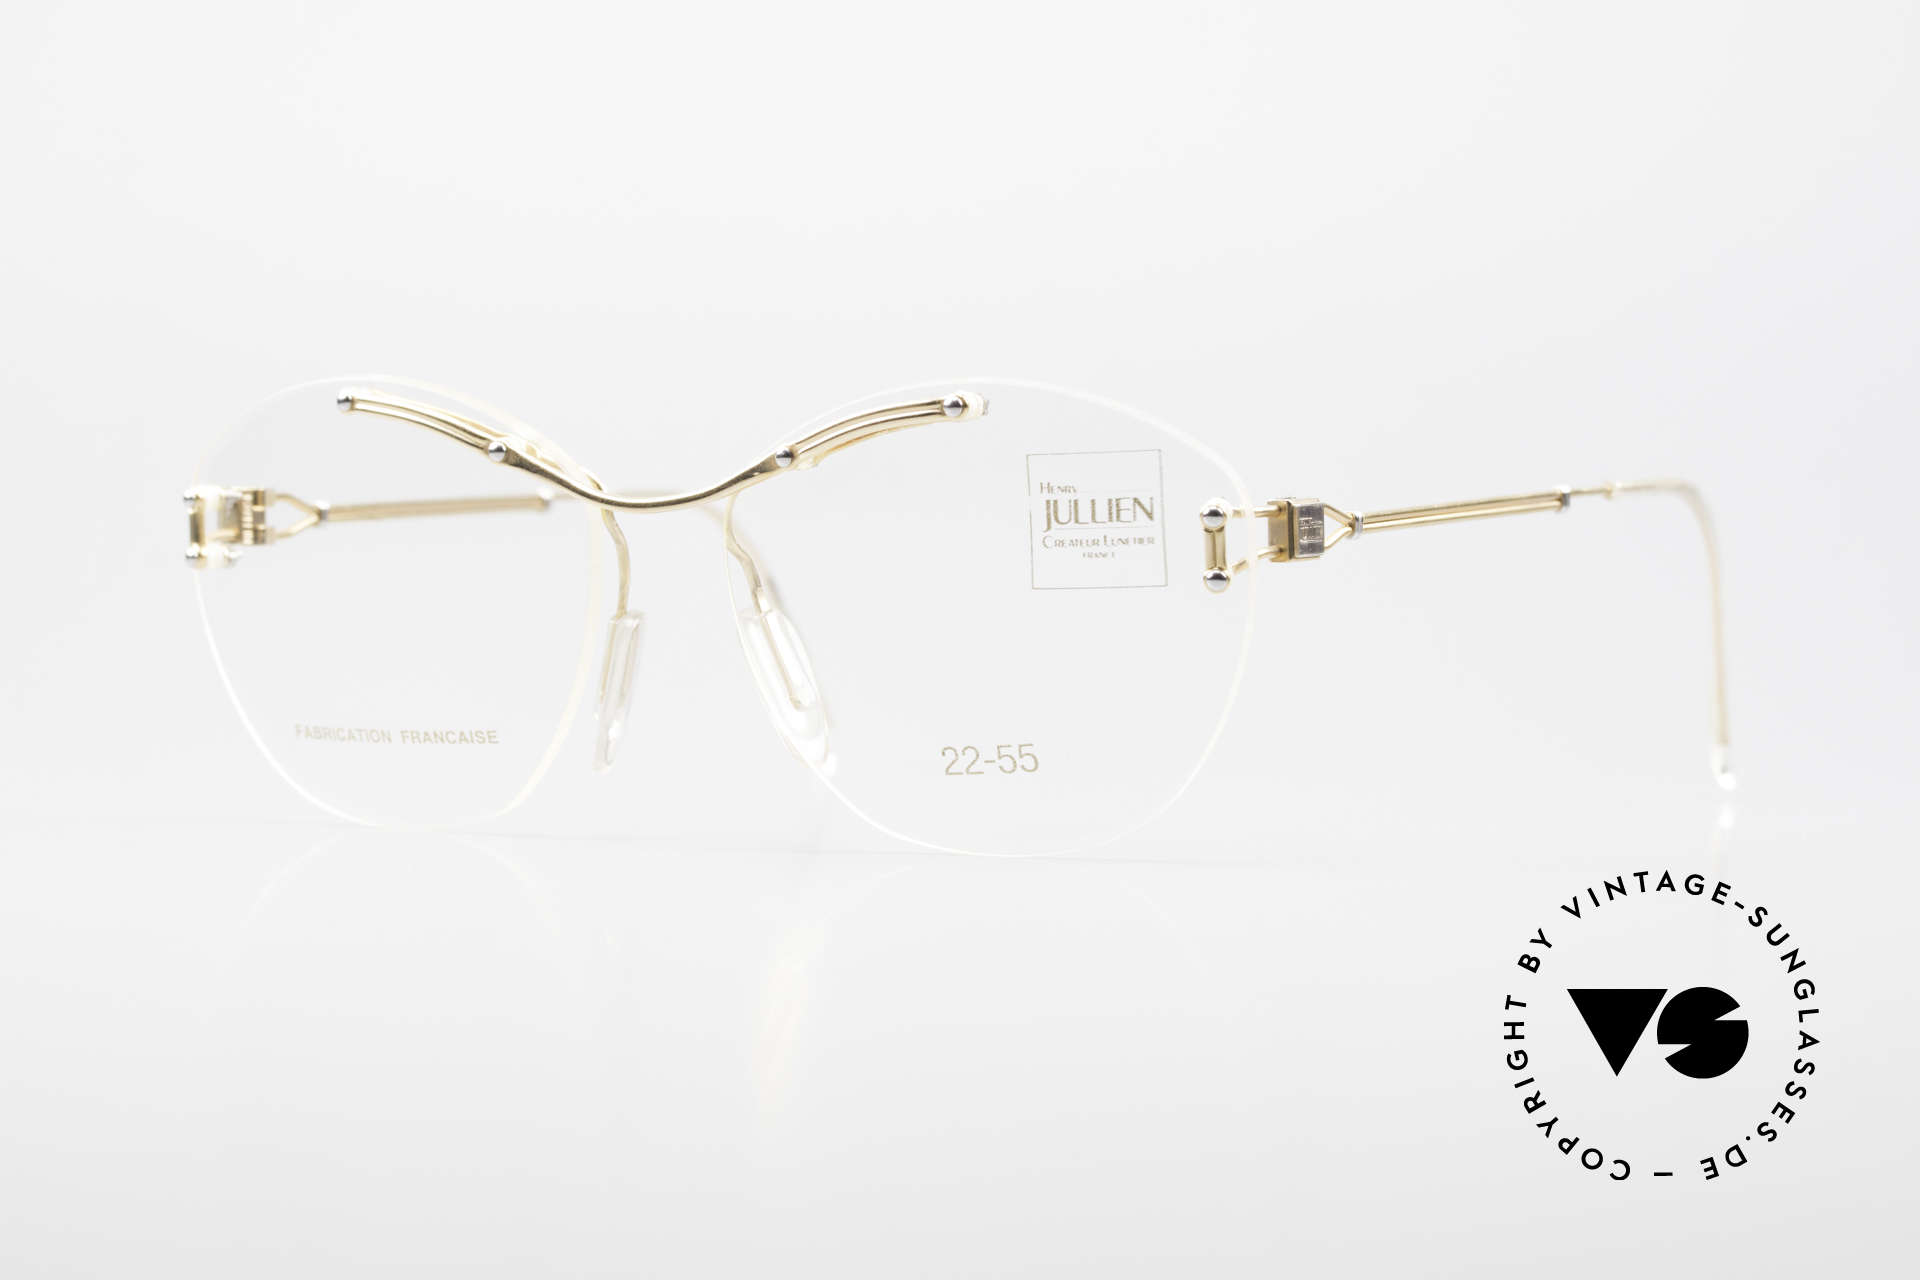 Henry Jullien Melrose 2255 Rimless Vintage Ladies Frame, accordingly top-notch, noble & precious frame finish, Made for Women